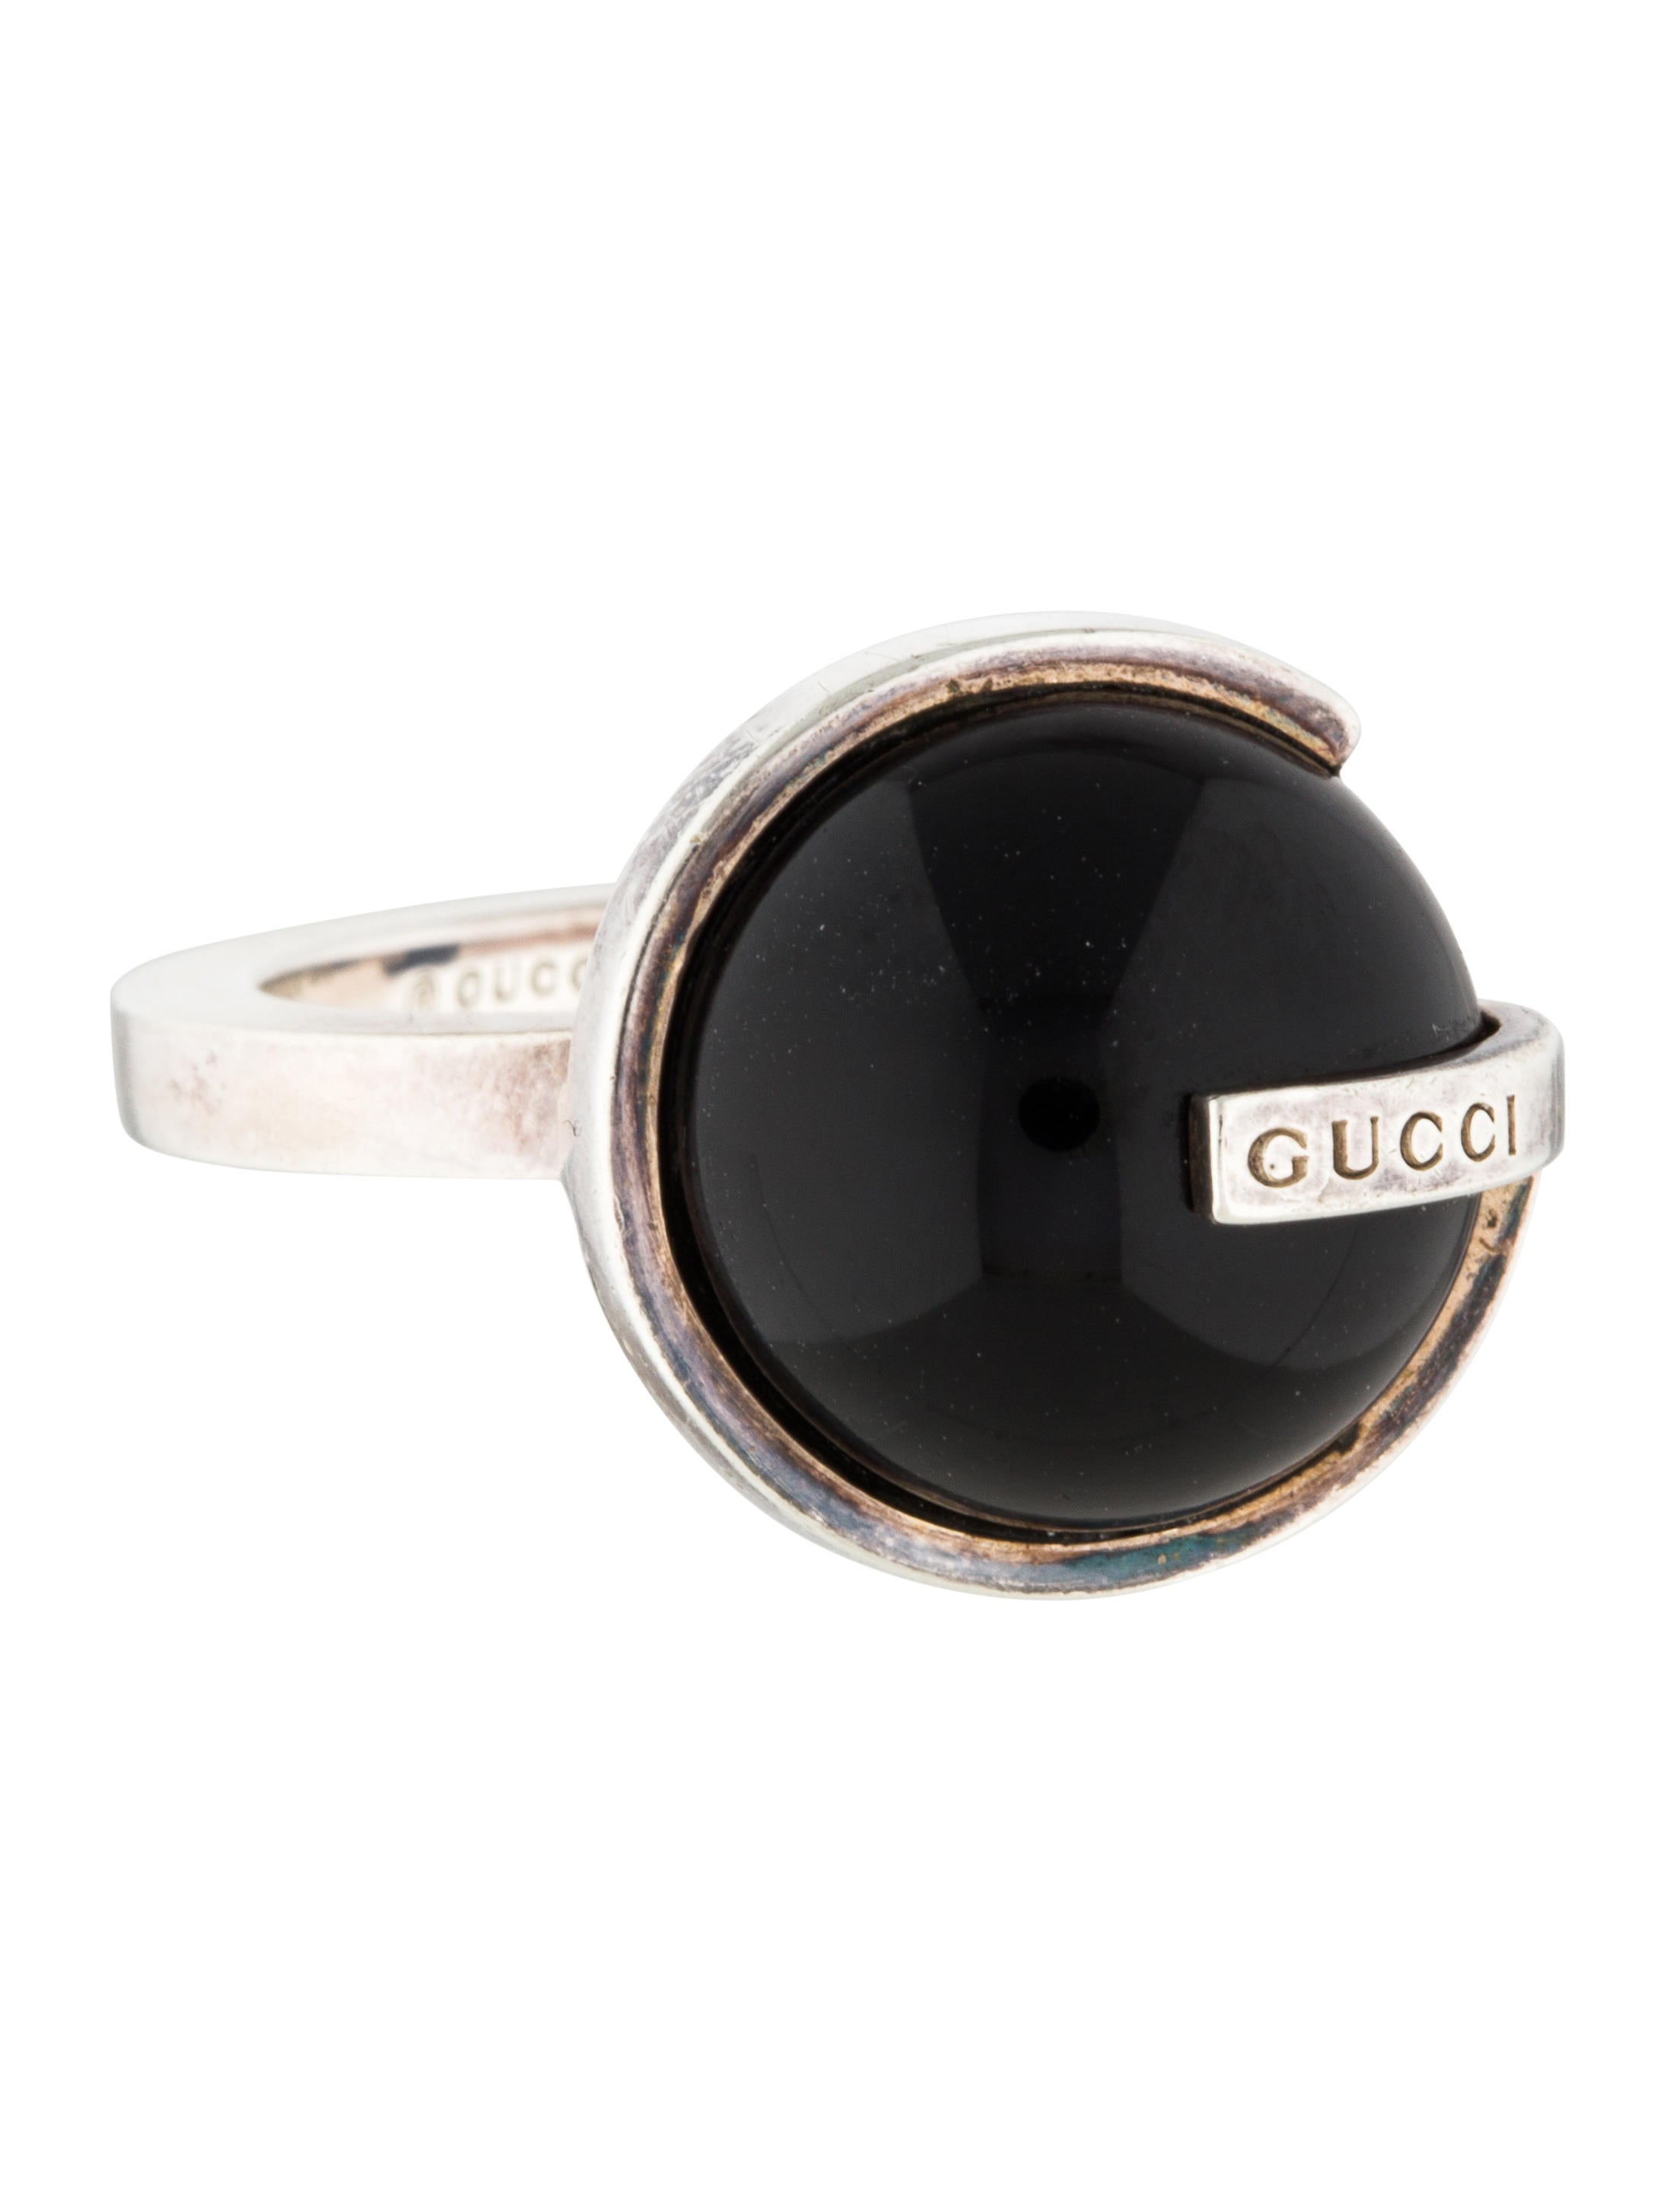 2a6725f72 Gucci Onyx Boule Ring - Rings - GUC151619